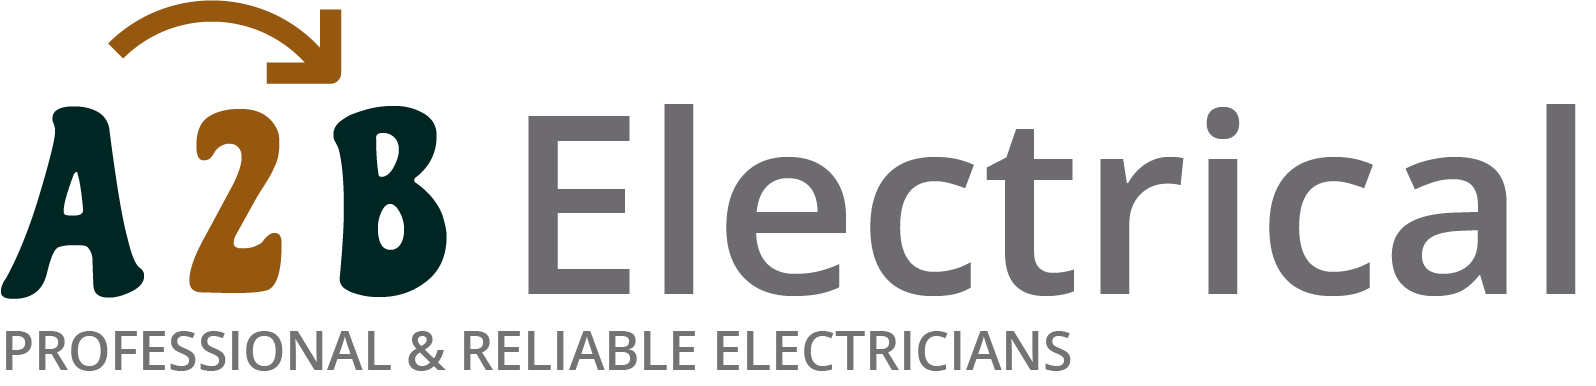 If you have electrical wiring problems in Chadwell Heath, we can provide an electrician to have a look for you.